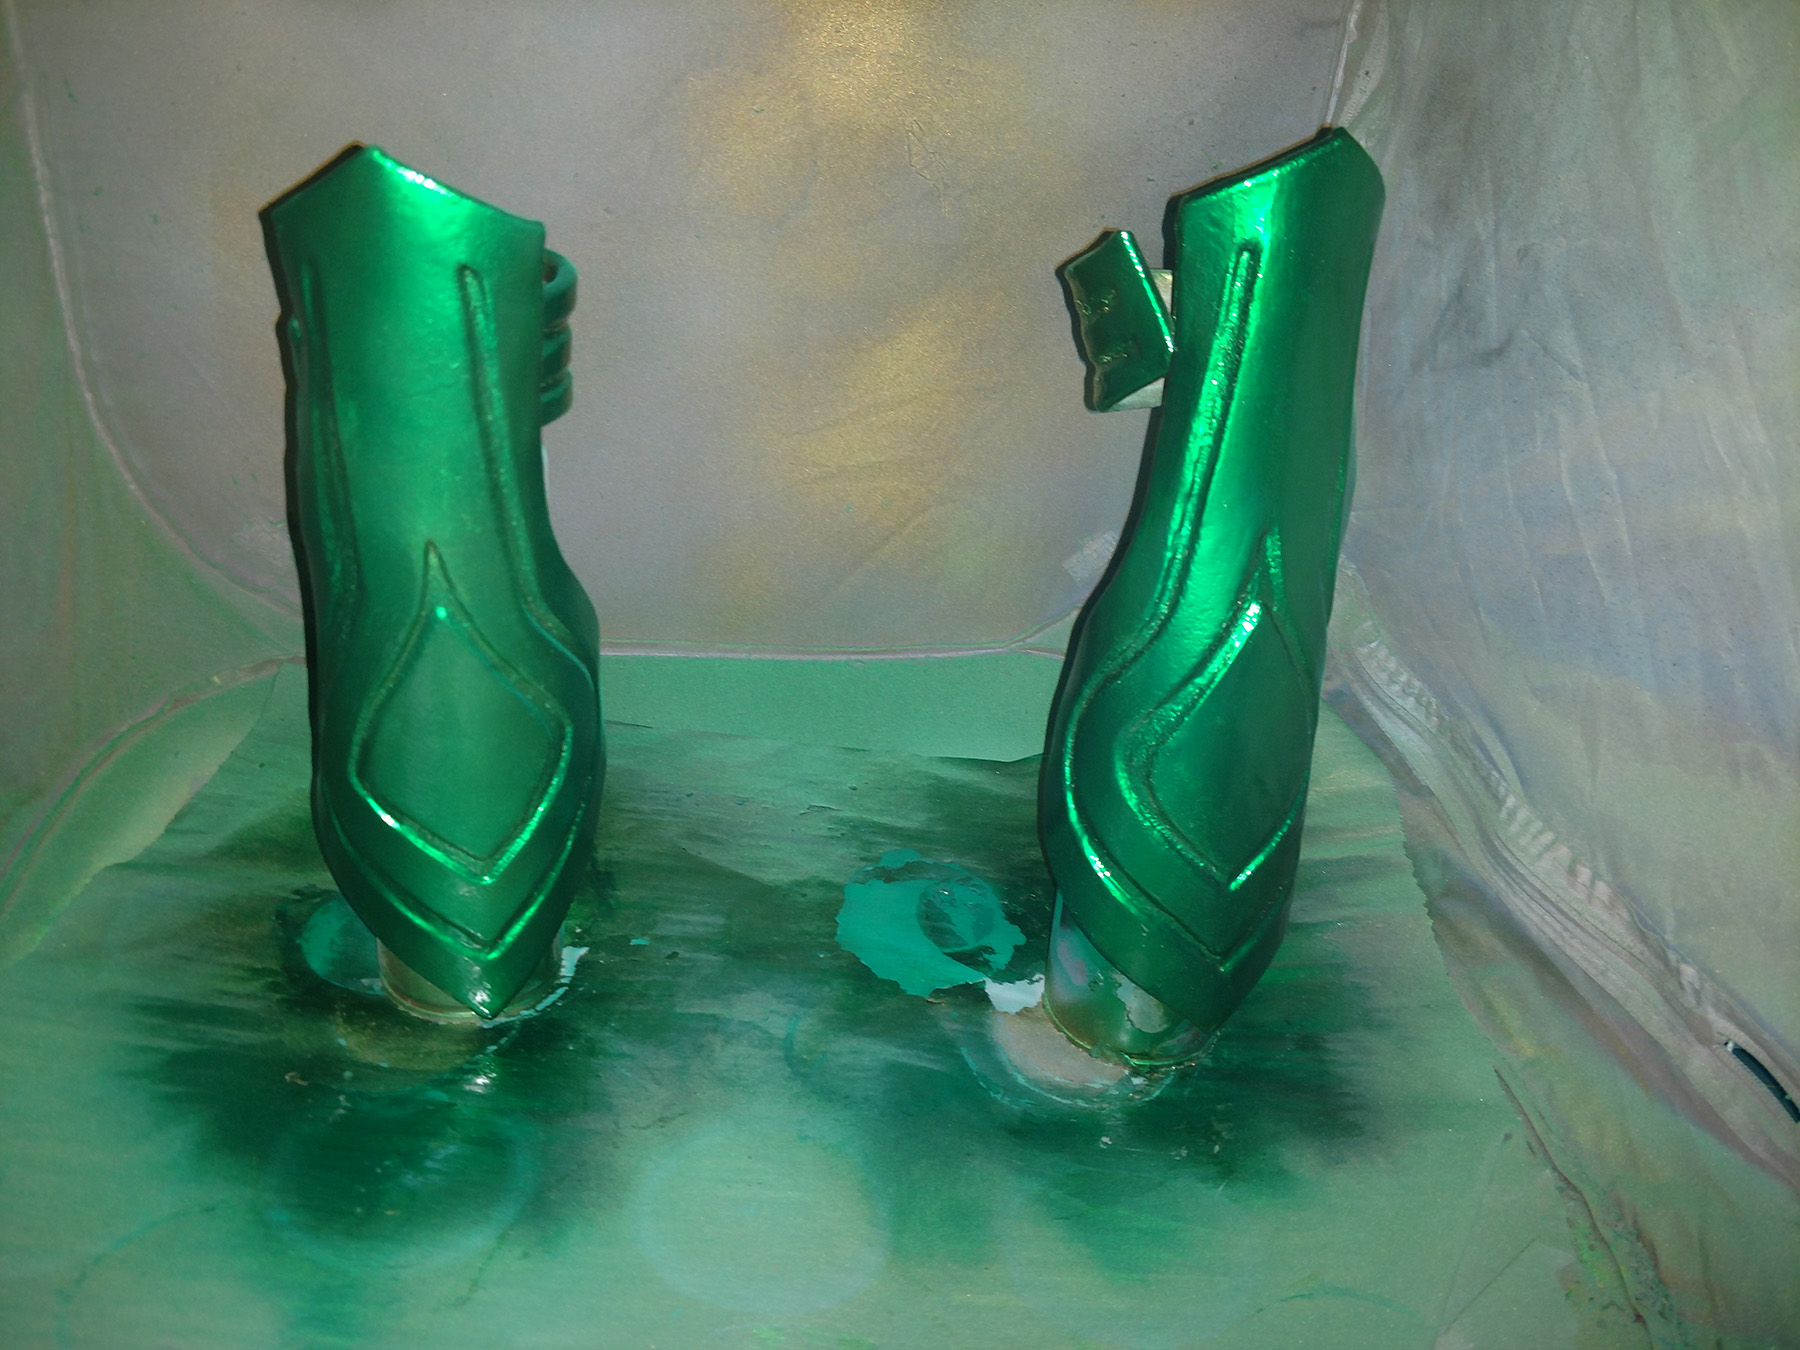 Shiny metallic green Hela bracers are shown against a grey backdrop that is covered in green and gold spray paint.